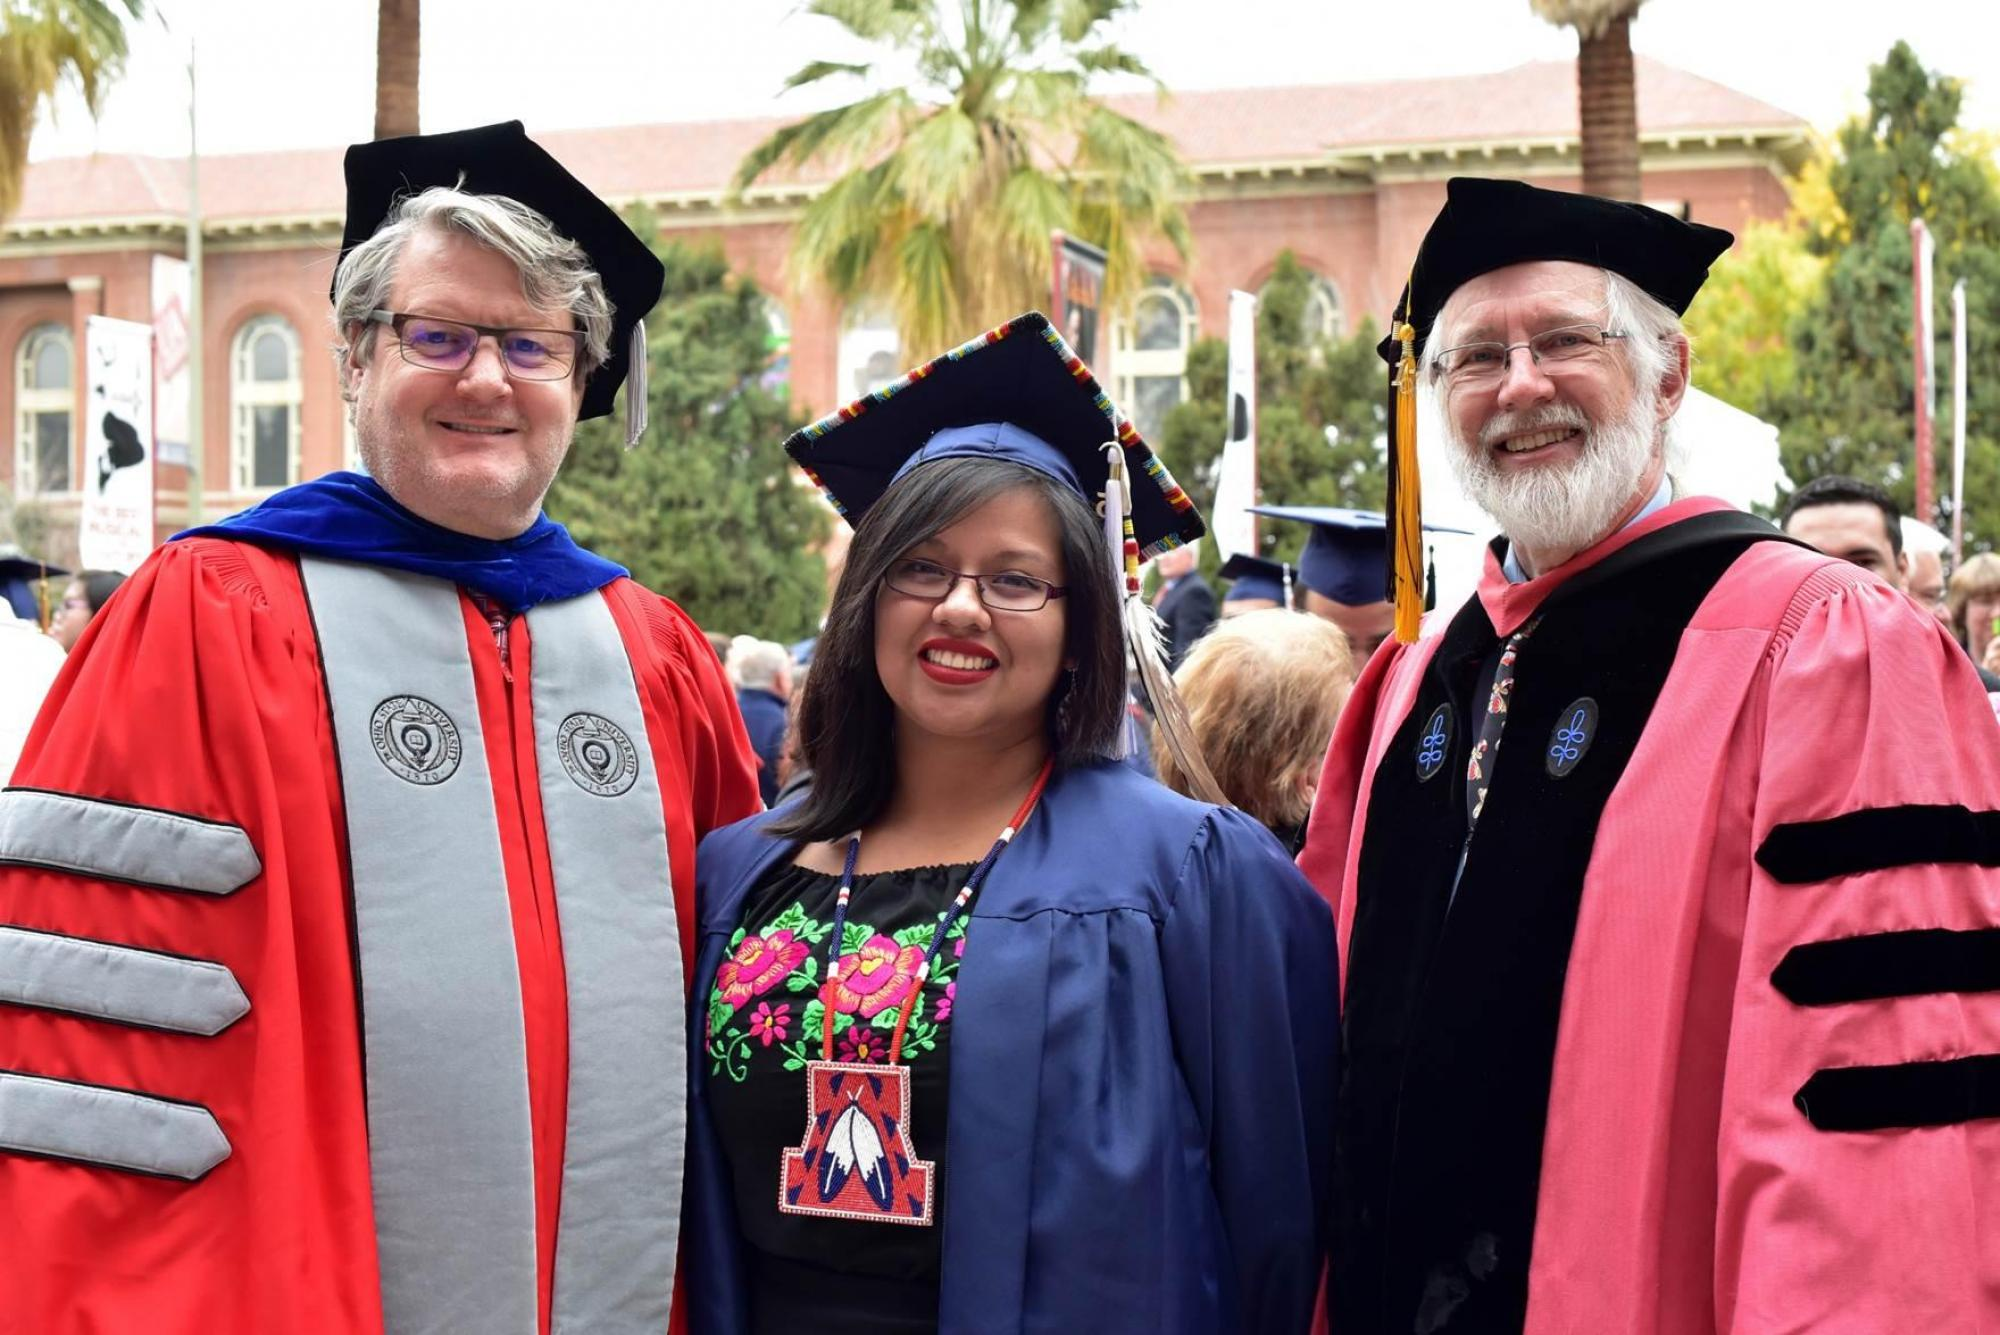 Maria Escalante, one of the first students to graduate from the UA's Bachelor of Arts degree in American Indian studies, with John Paul Jones III, dean of the UA College of Social and Behavioral Sciences, and Ronald Trosper, an American Indian studies pro